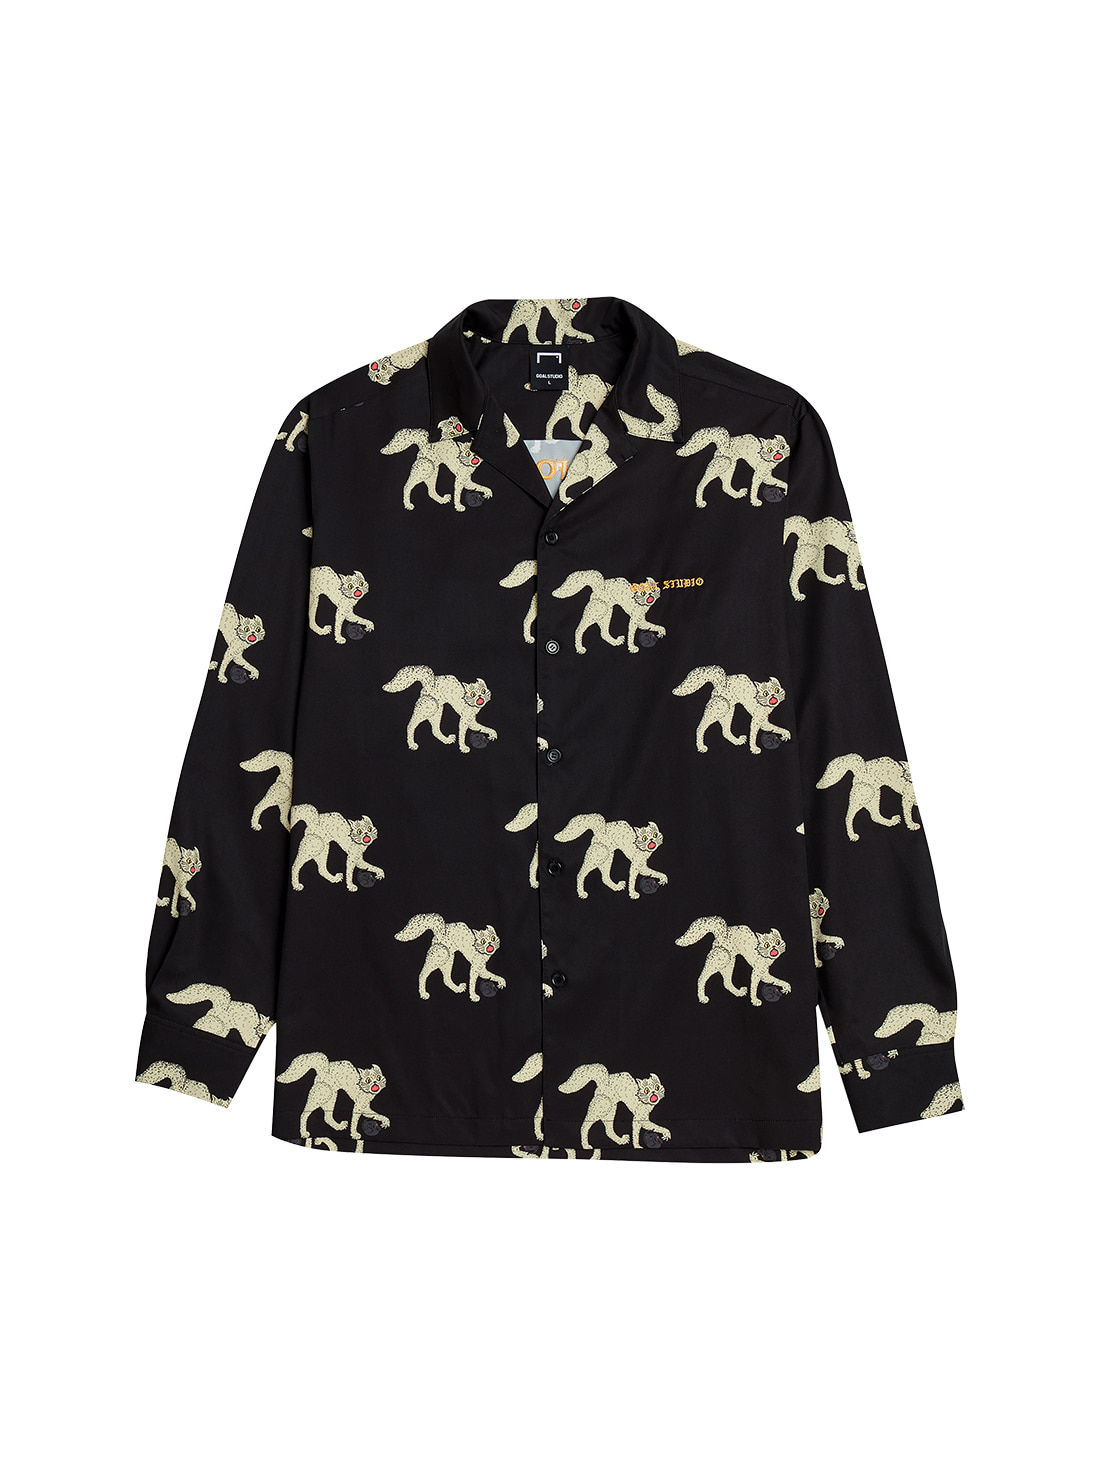 MC ALL OVER PATTERN SHIRTS - BLACK